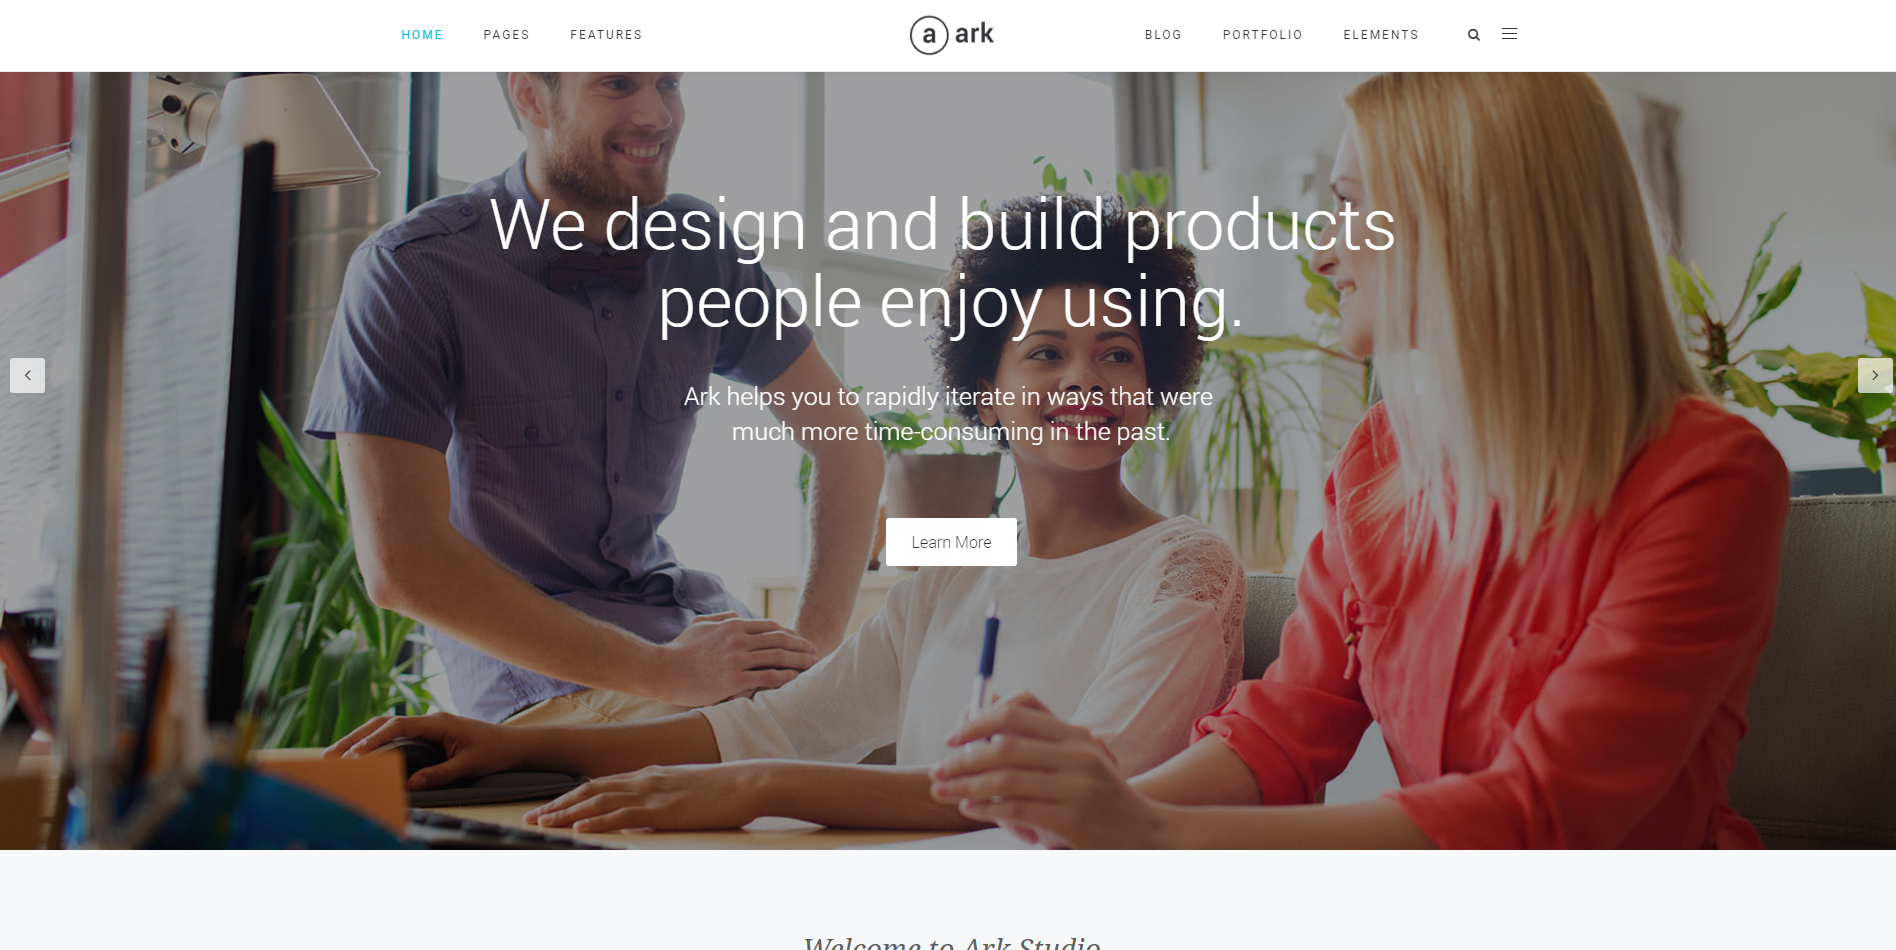 wpion review the ark multipurpose wordpress theme by freshface the ark theme